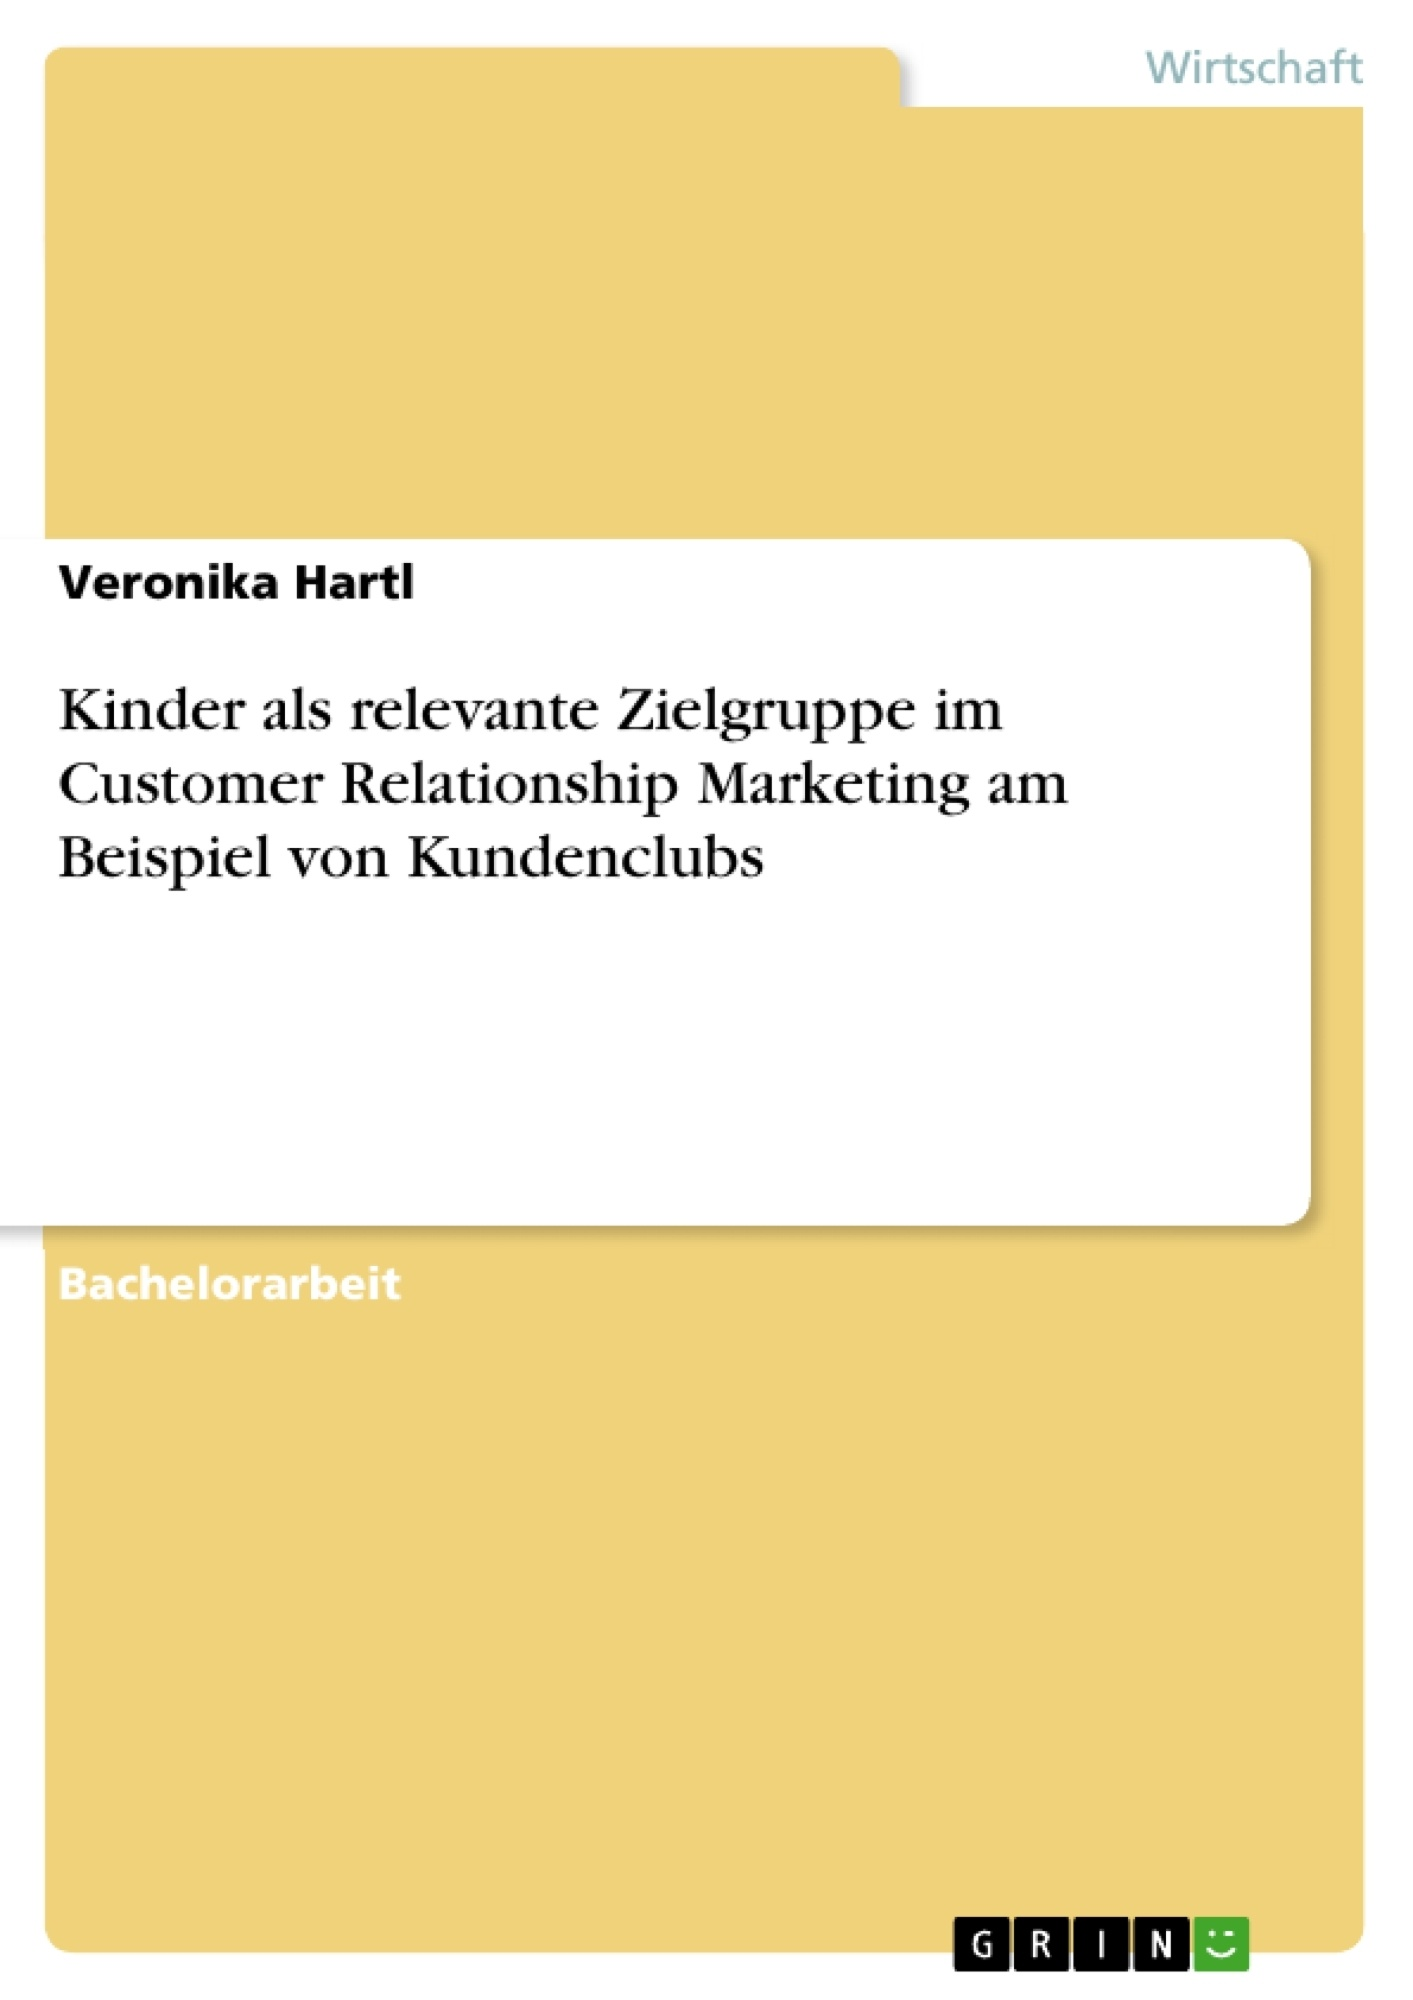 Titel: Kinder als relevante Zielgruppe im Customer Relationship Marketing am Beispiel von Kundenclubs